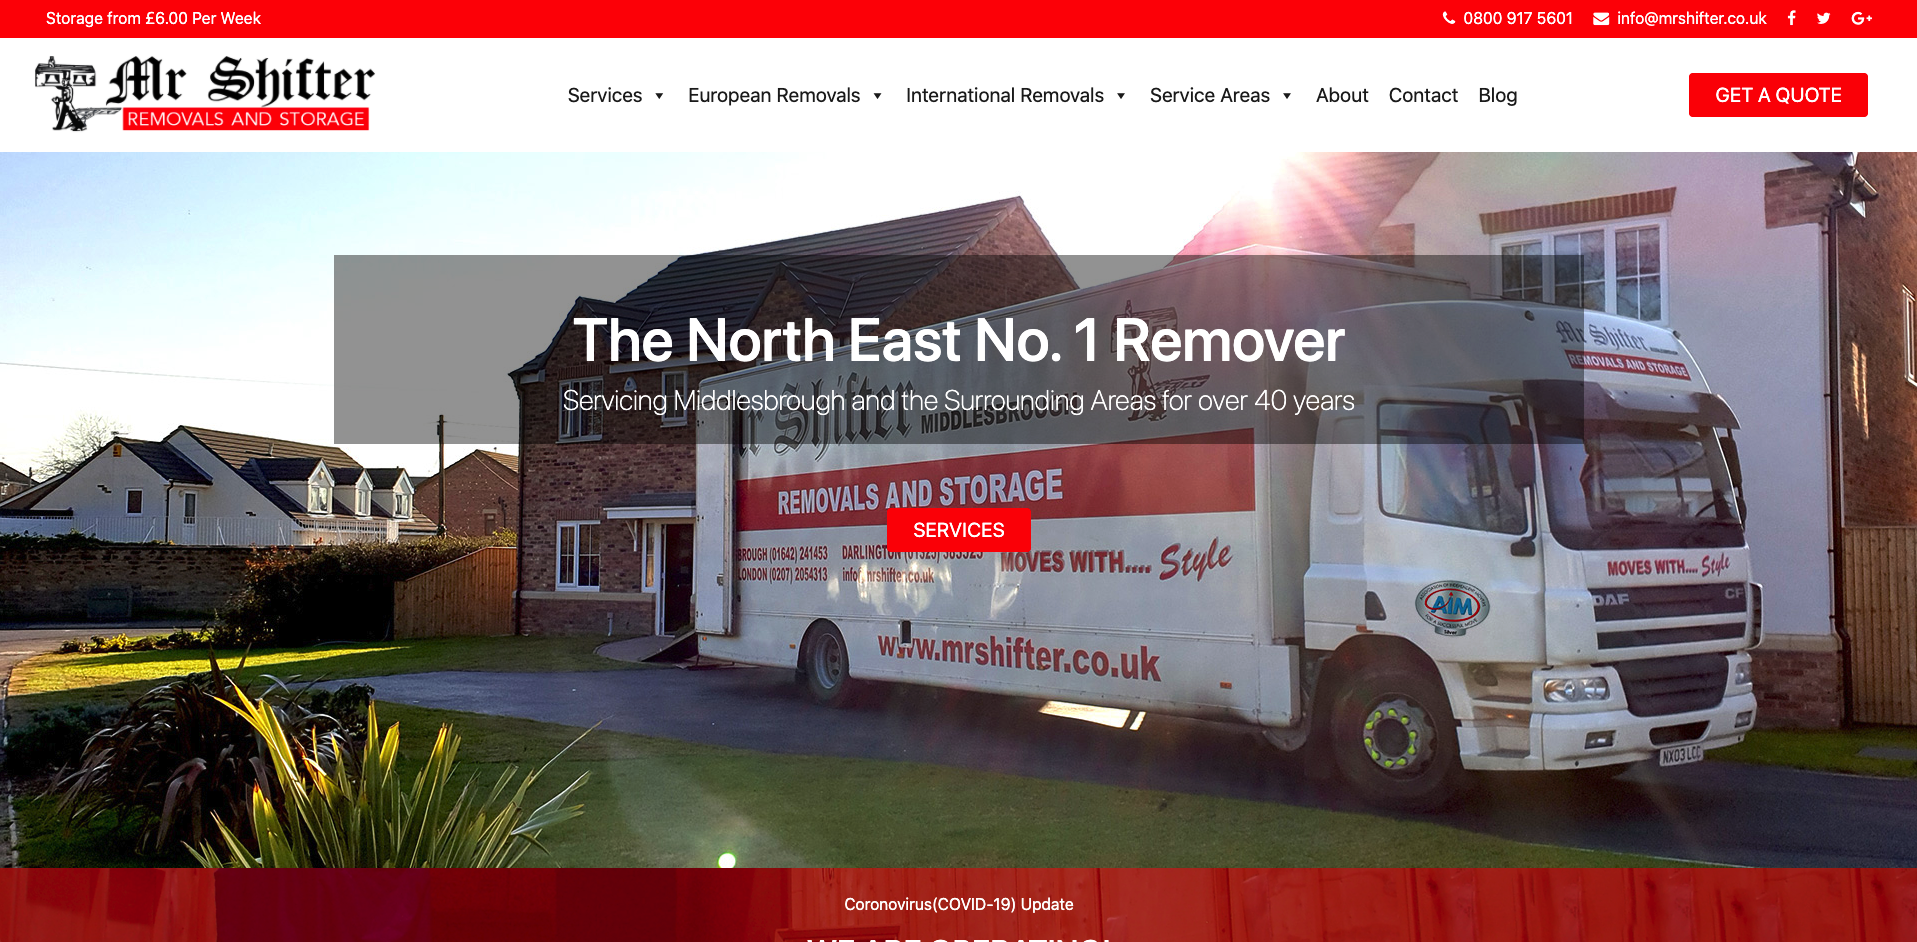 Mr Shifter Removals and Storage